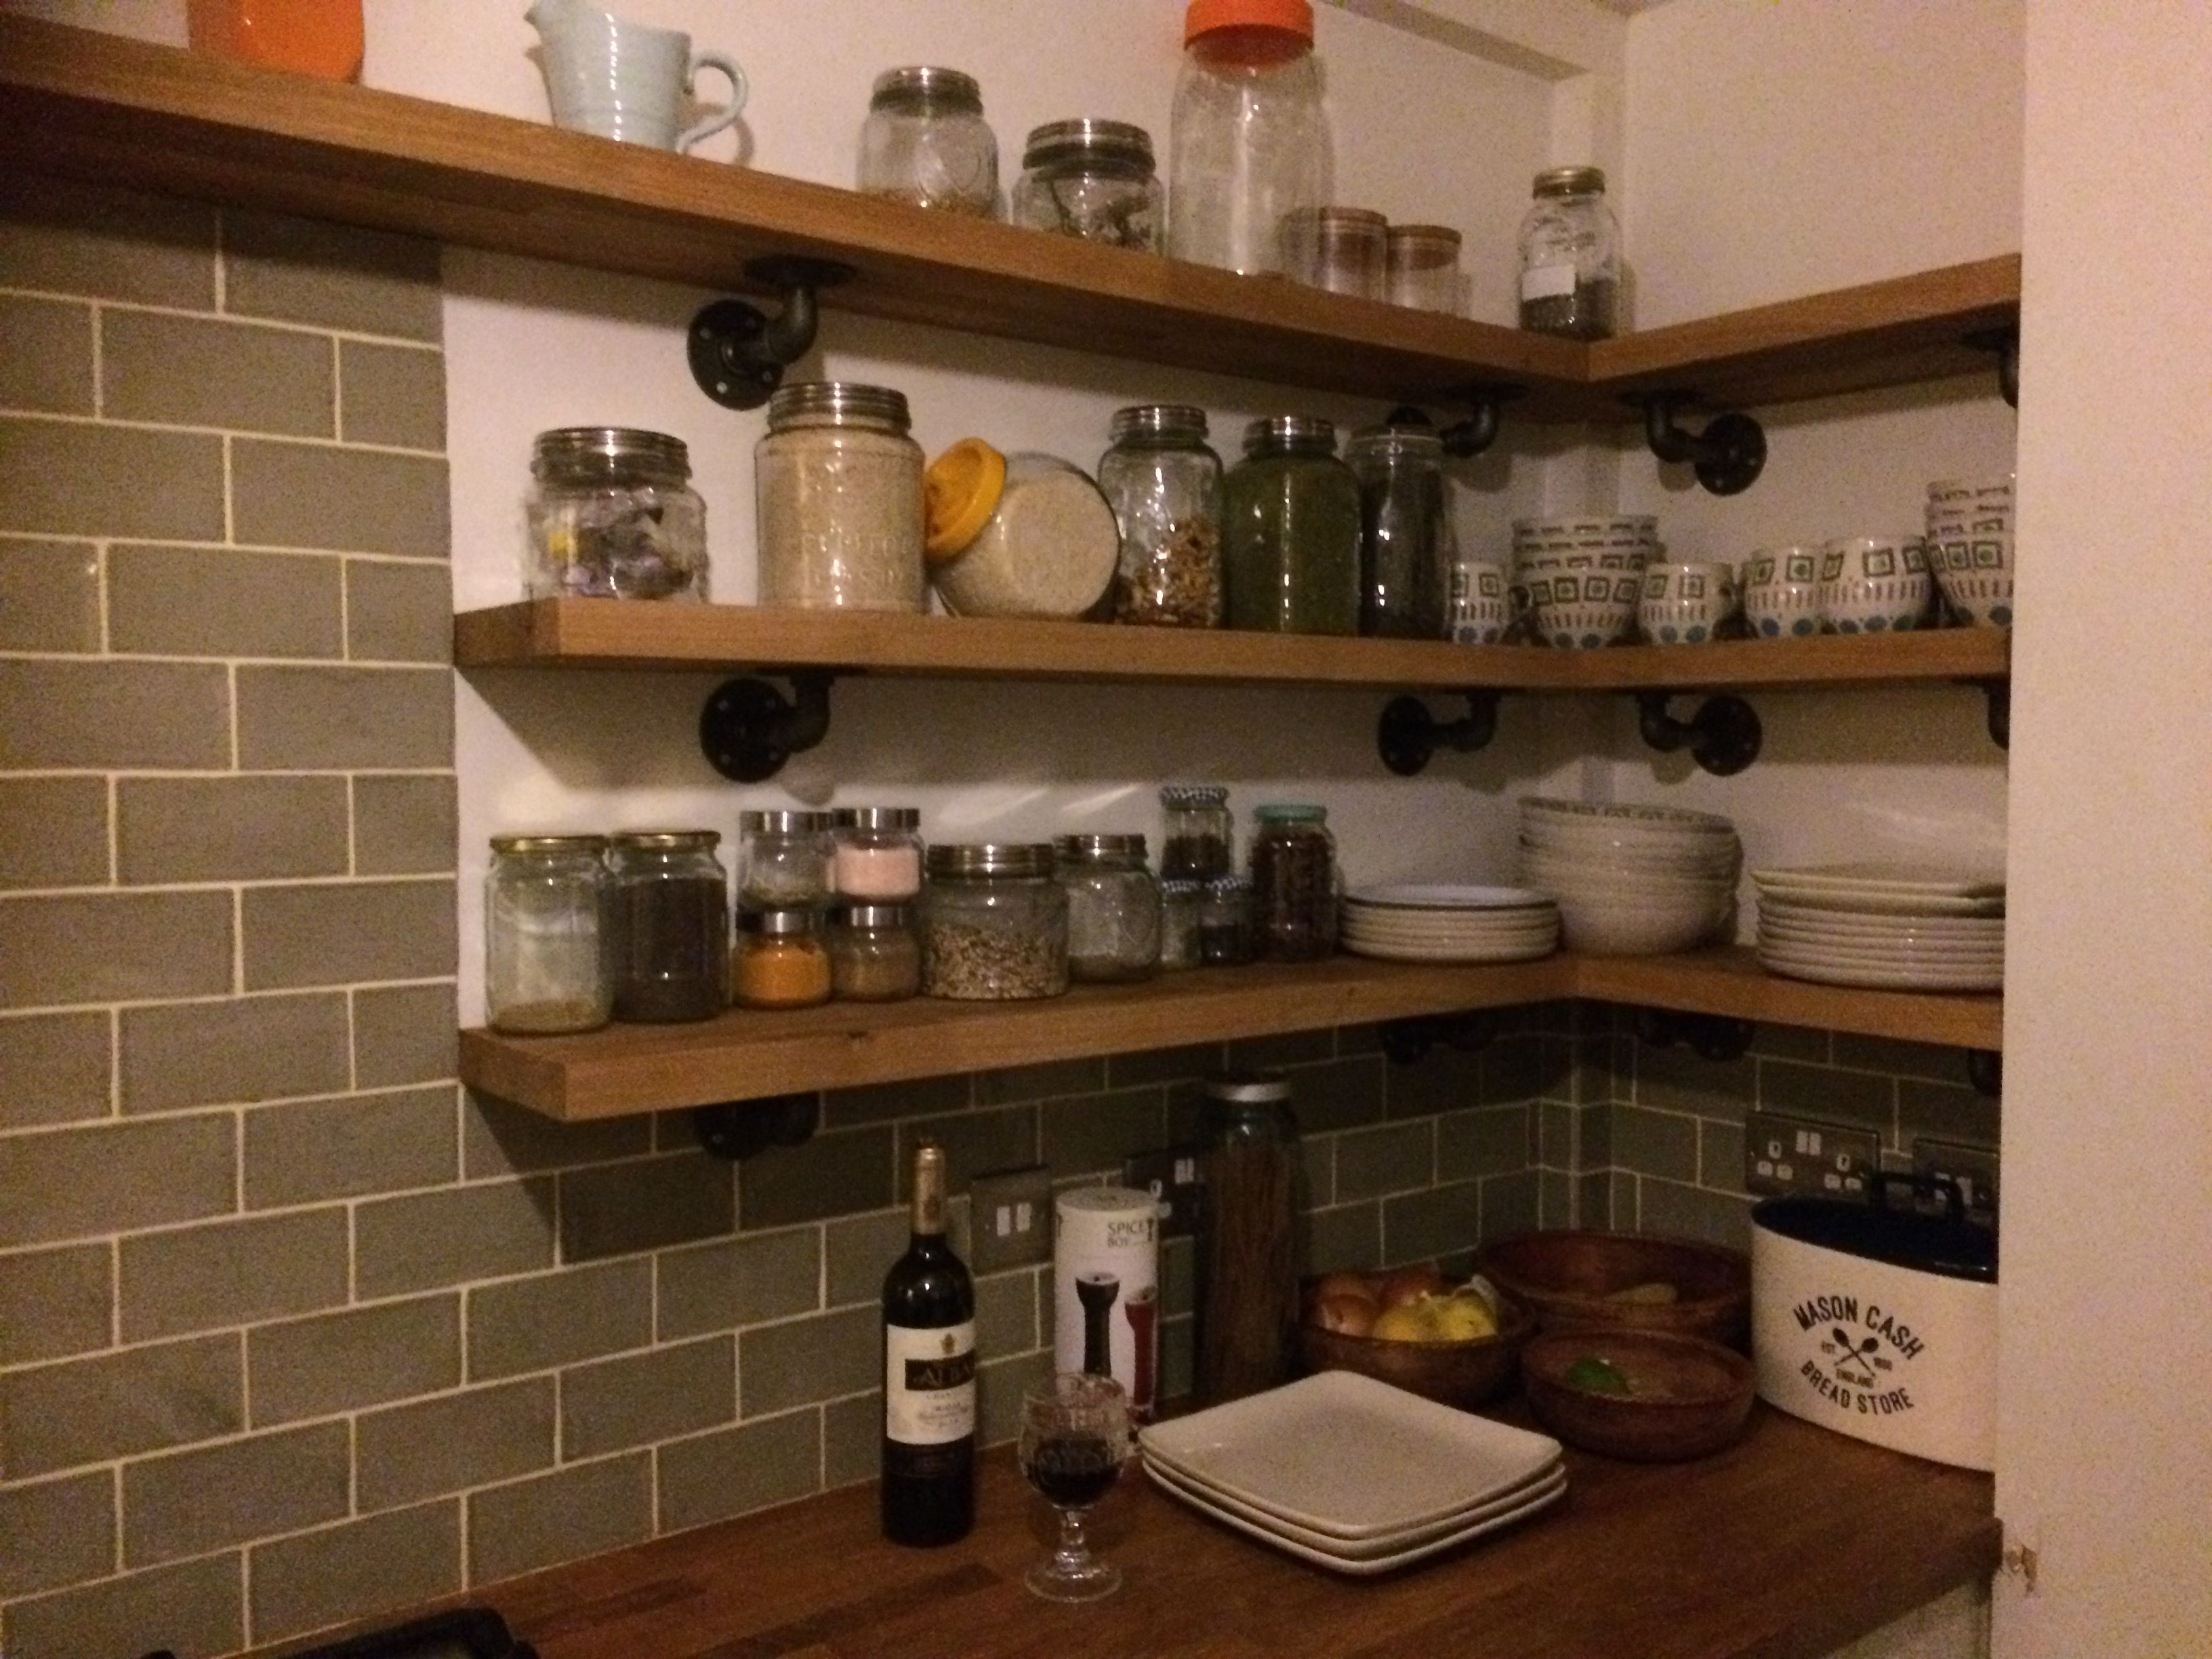 Small shelves in my kitchen create a feeling of more space